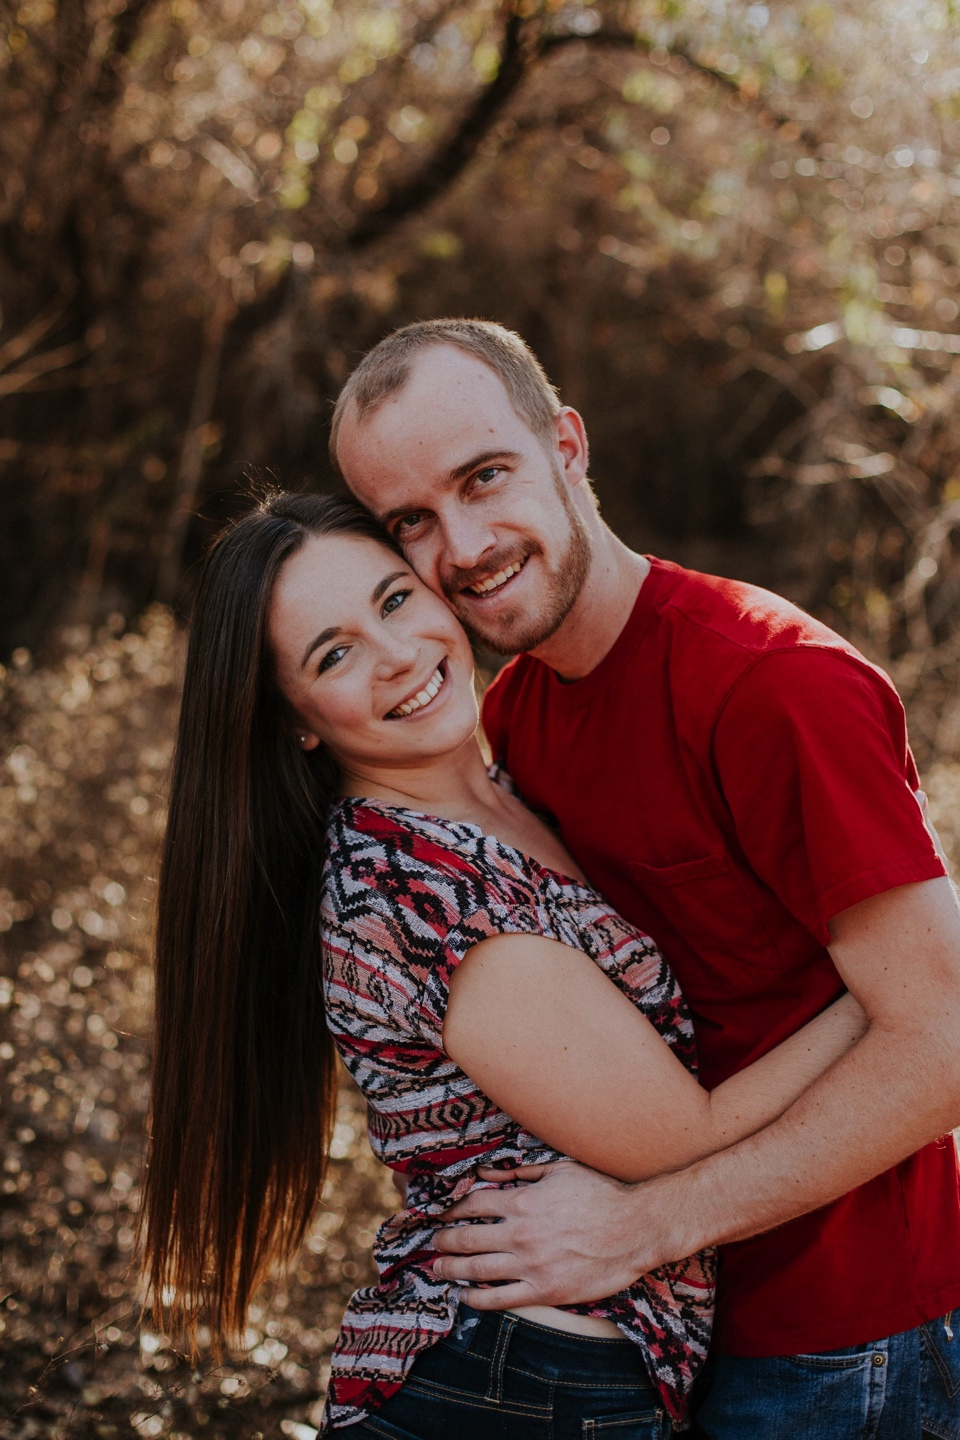 We met up again in Albuquerque, New Mexico and ventured to the Albuquerque bosque to take some fall inspired engagement photos. I loved the warm color palette they chose for their attire for this part of the session! We also had to take some cute engagement photo inspiration photos with the  Starbucks  red cups! <3